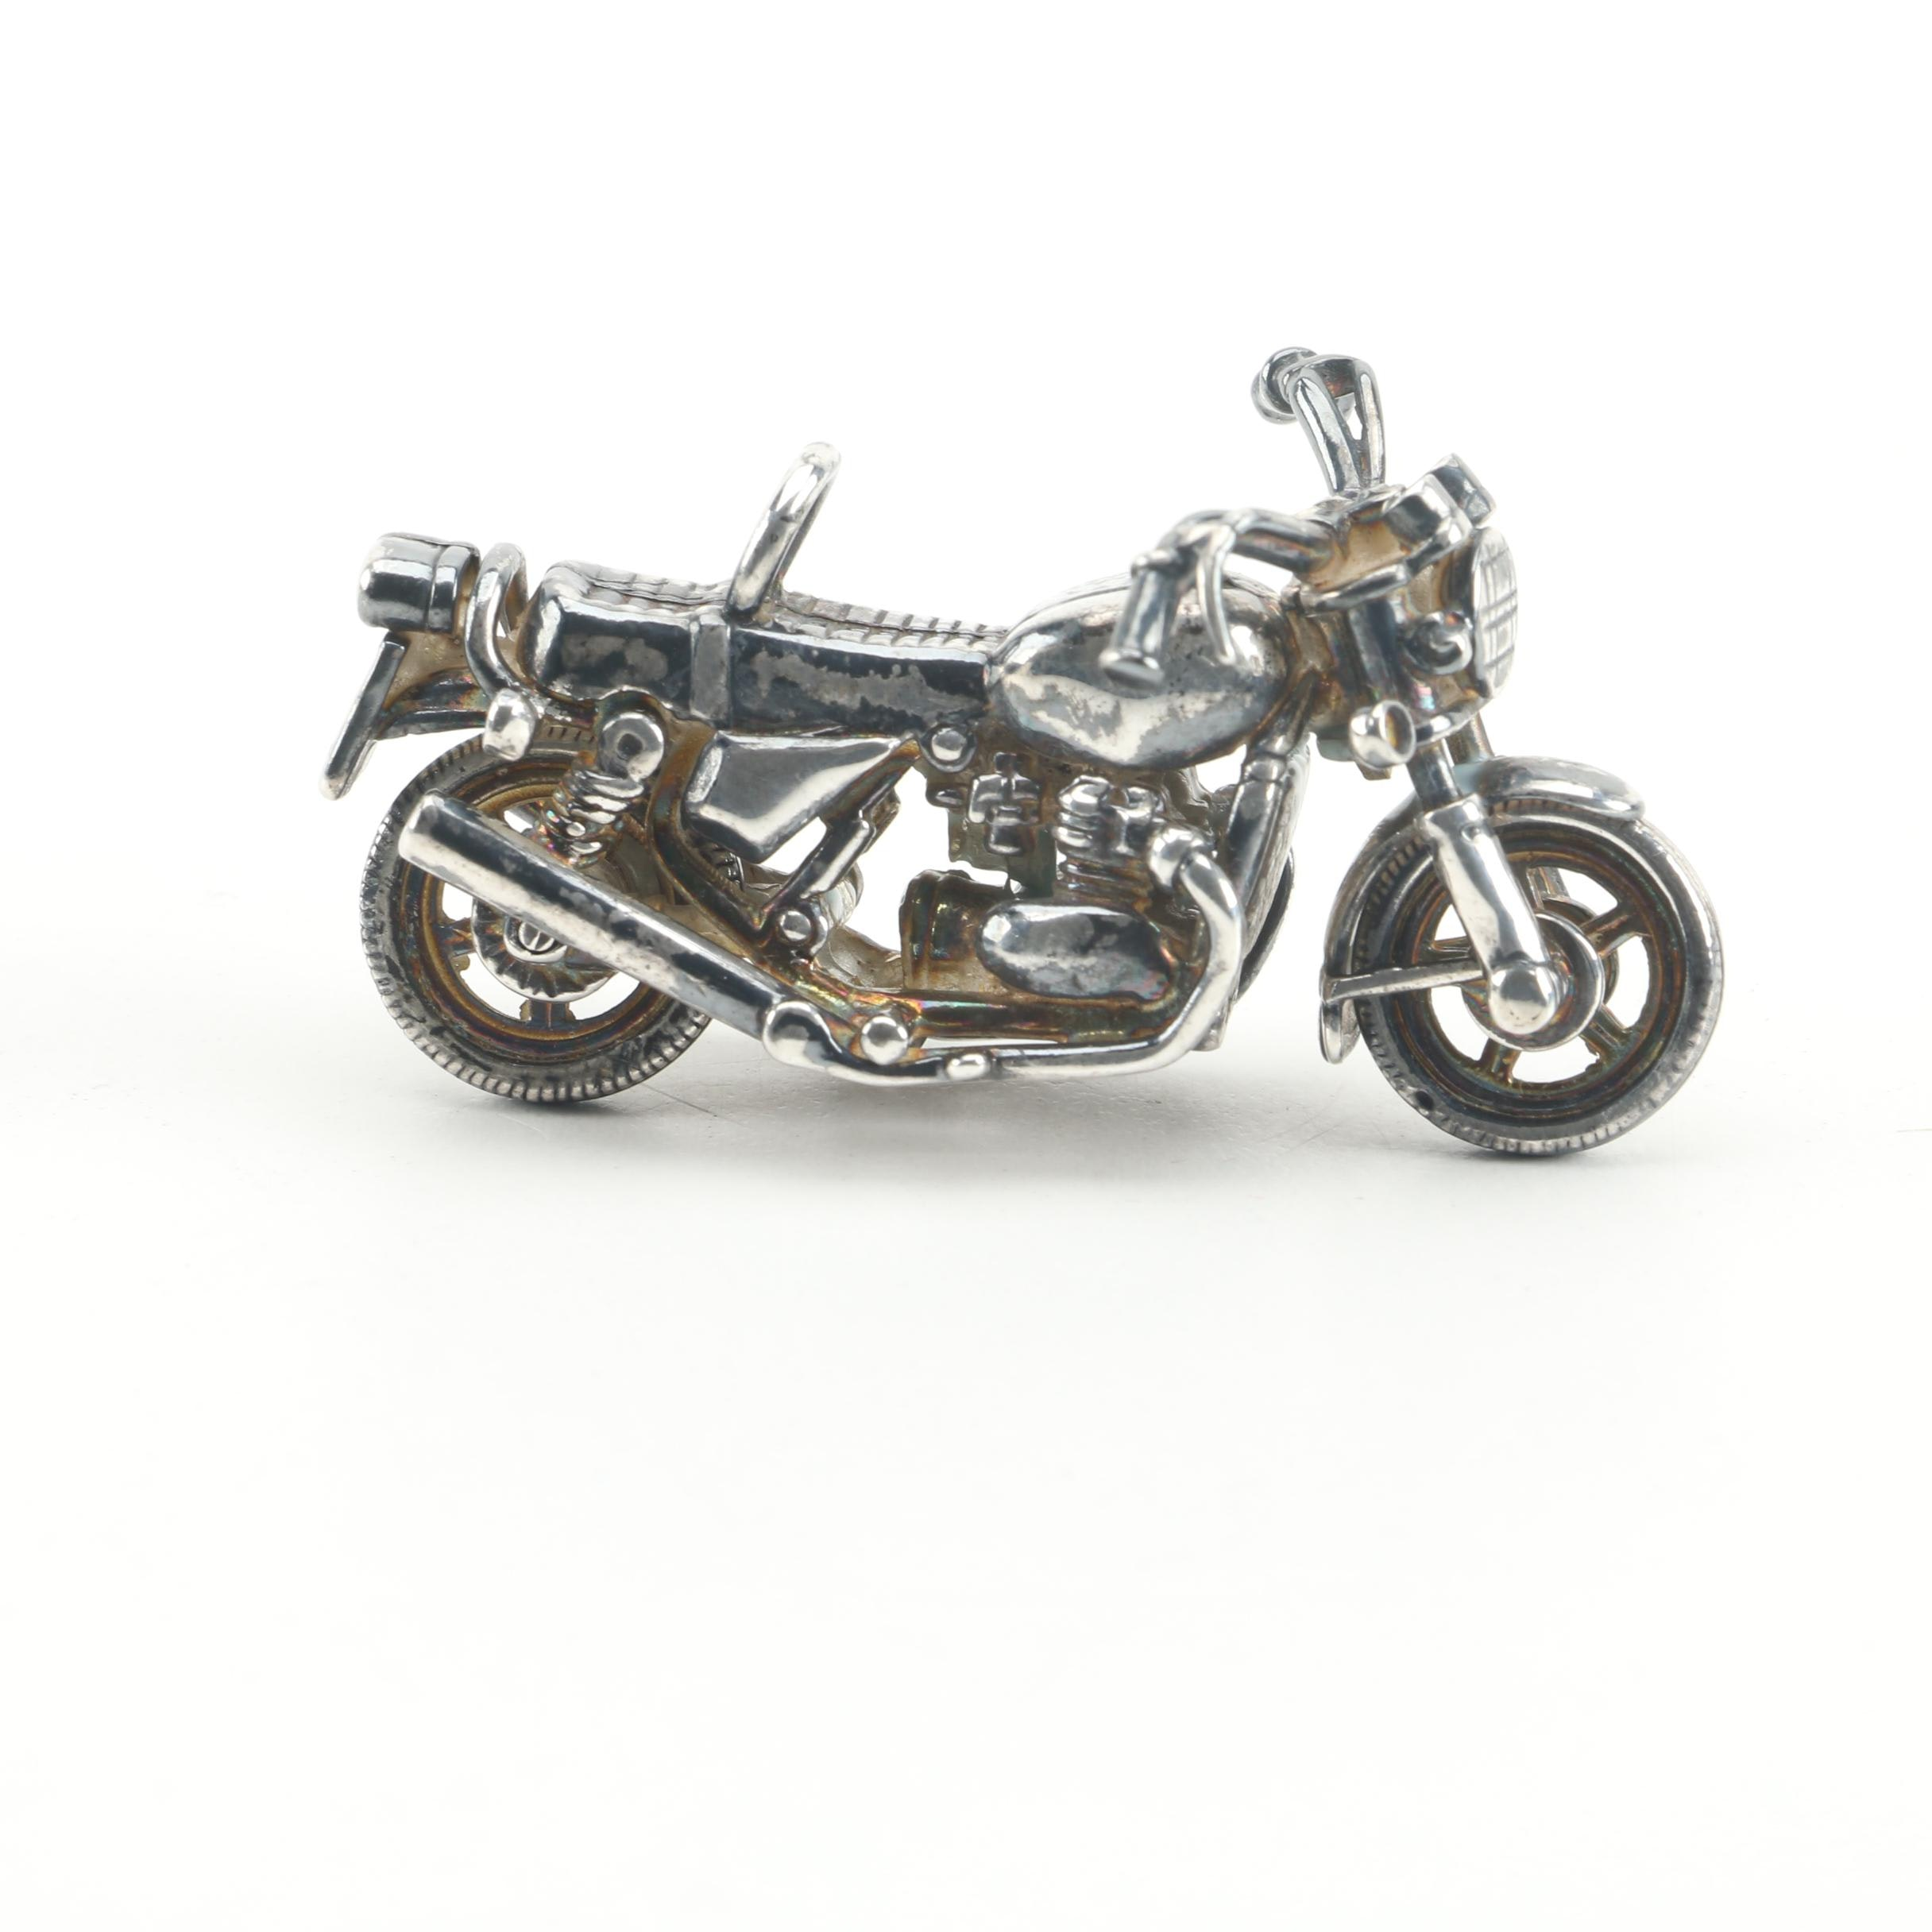 Sterling Silver and Silver Plate Motorcycle Figurine